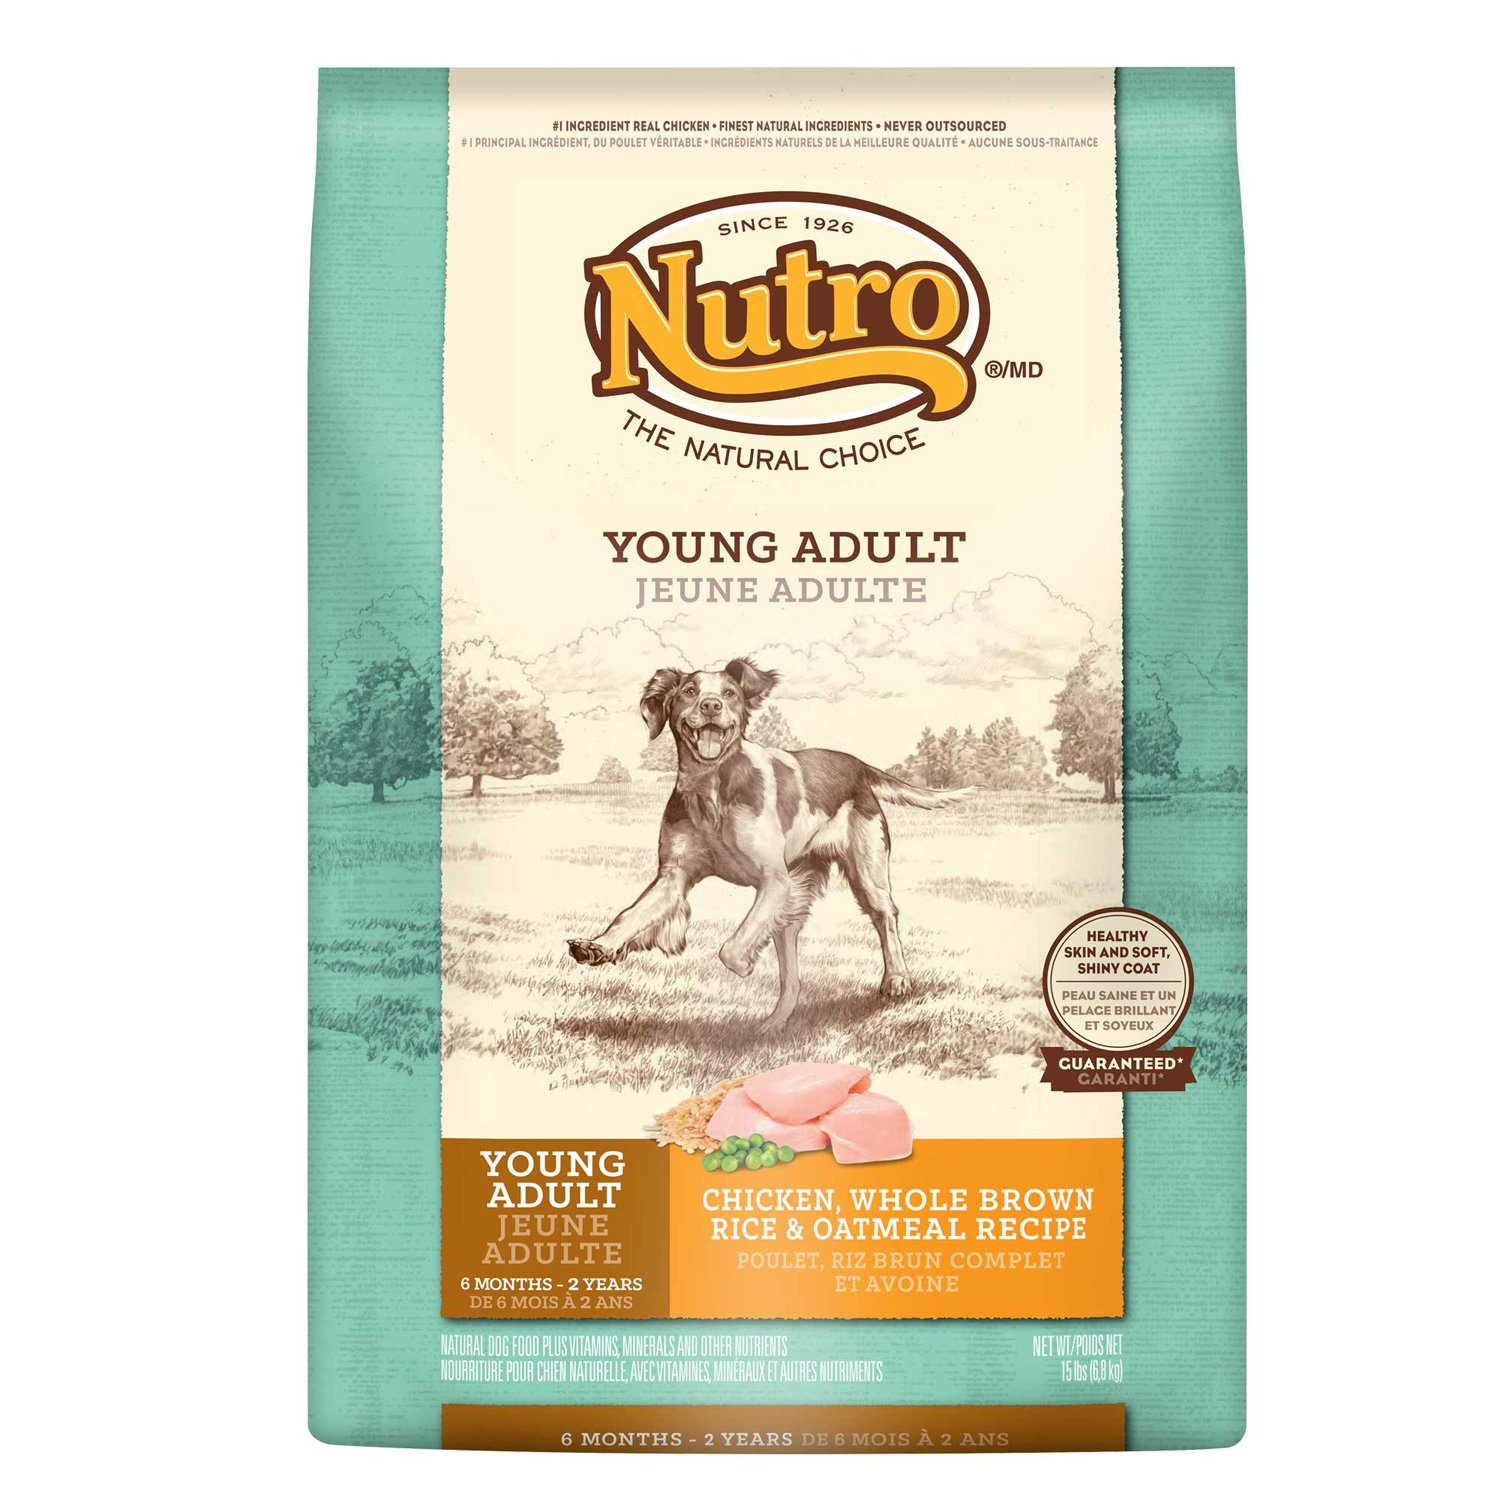 Nutro Natural Choice Chicken, Whole Brown Rice & Oatmeal Young Adult Dog Food